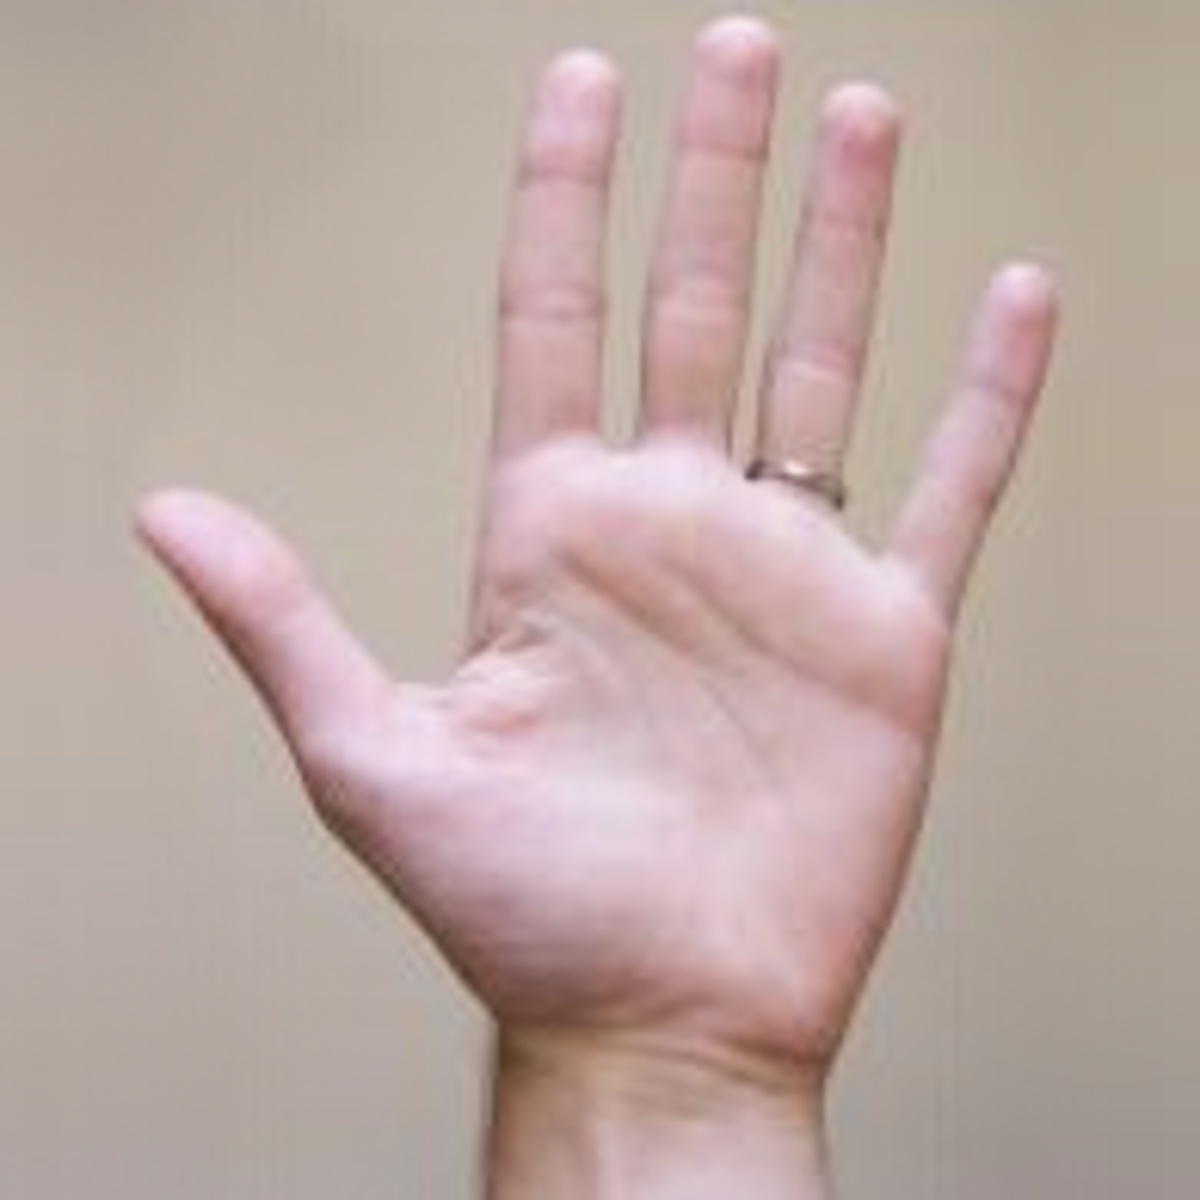 palmistry-for-beginners-what-your-hands-say-about-you